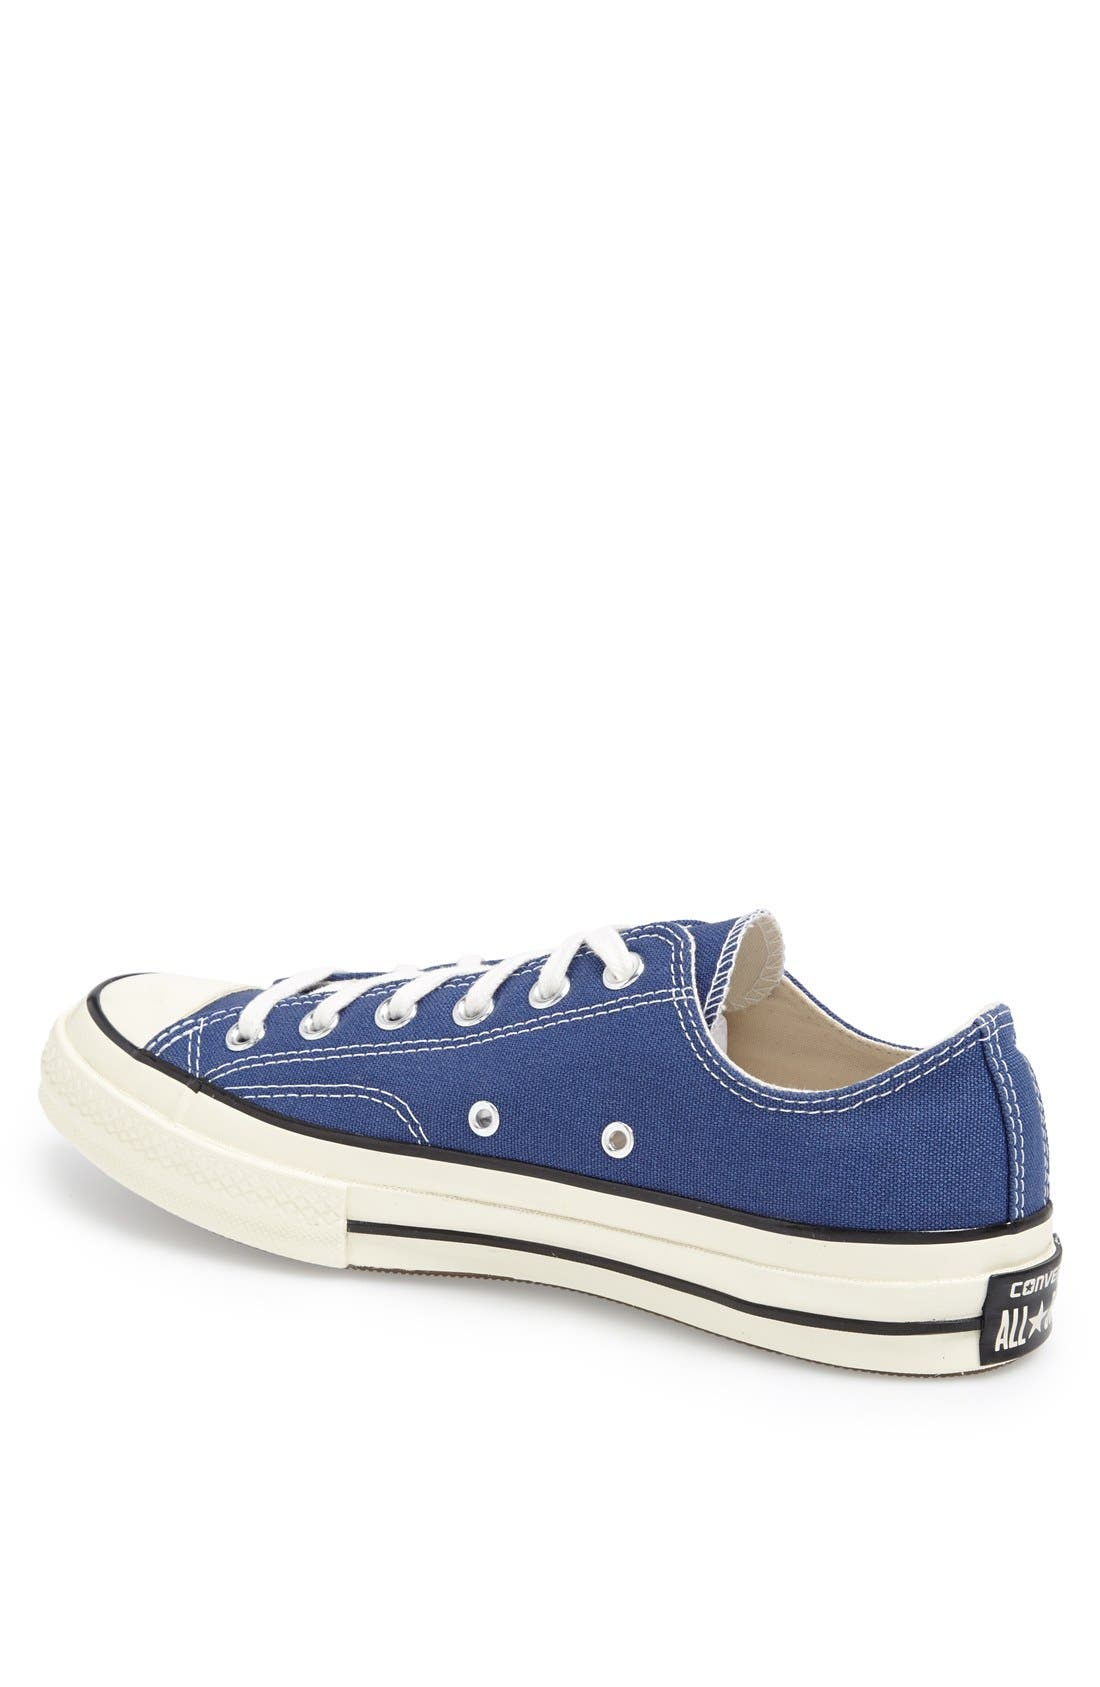 Chuck Taylor<sup>®</sup> All Star<sup>®</sup> '70 Low Sneaker,                             Alternate thumbnail 17, color,